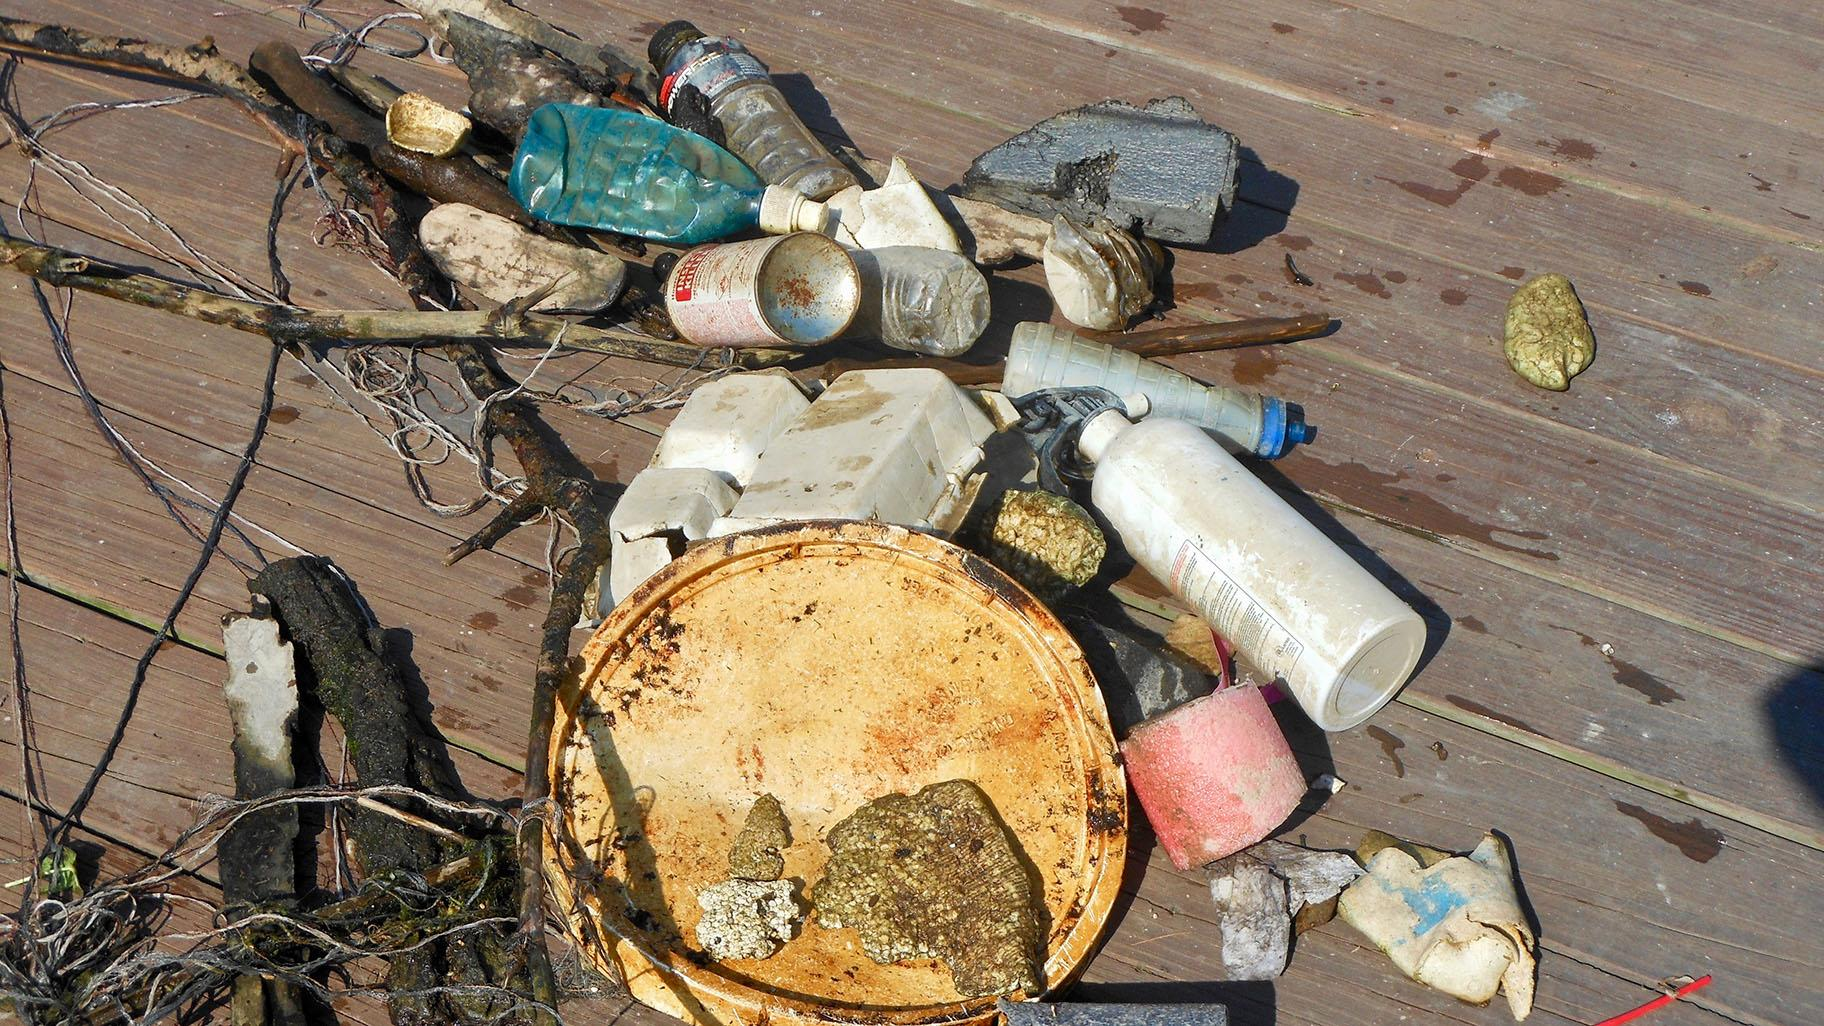 Plastic debris pulled from a Lake Erie marina in 2012. (Courtesy National Oceanic and Atmospheric Administration)